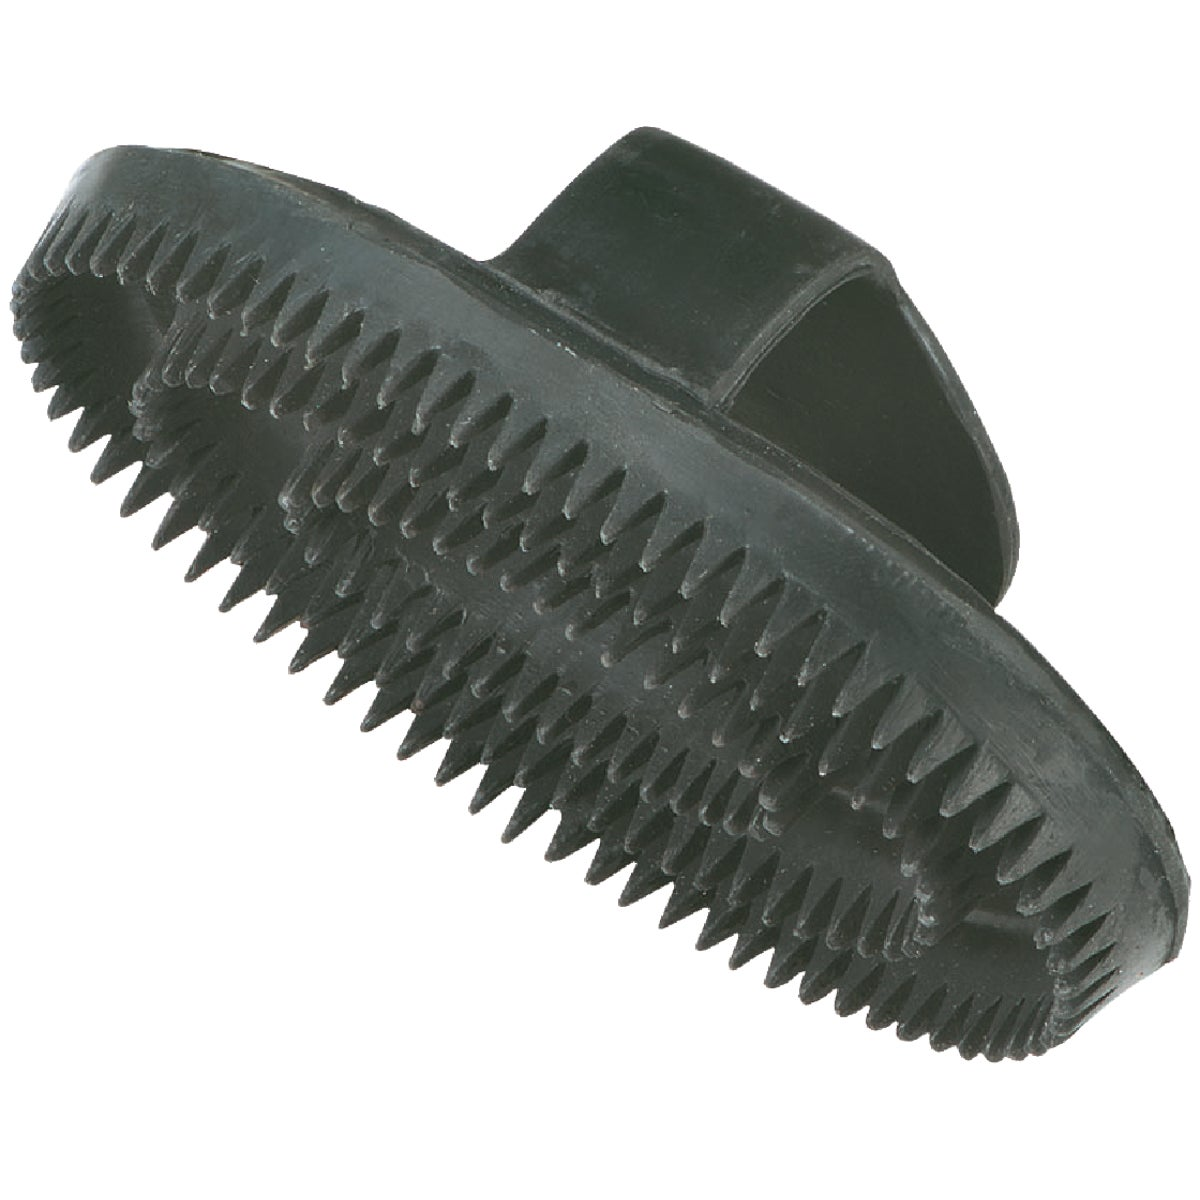 "5""MINI RUBBER CURRY COMB - M-83 by Decker Manufacturing"